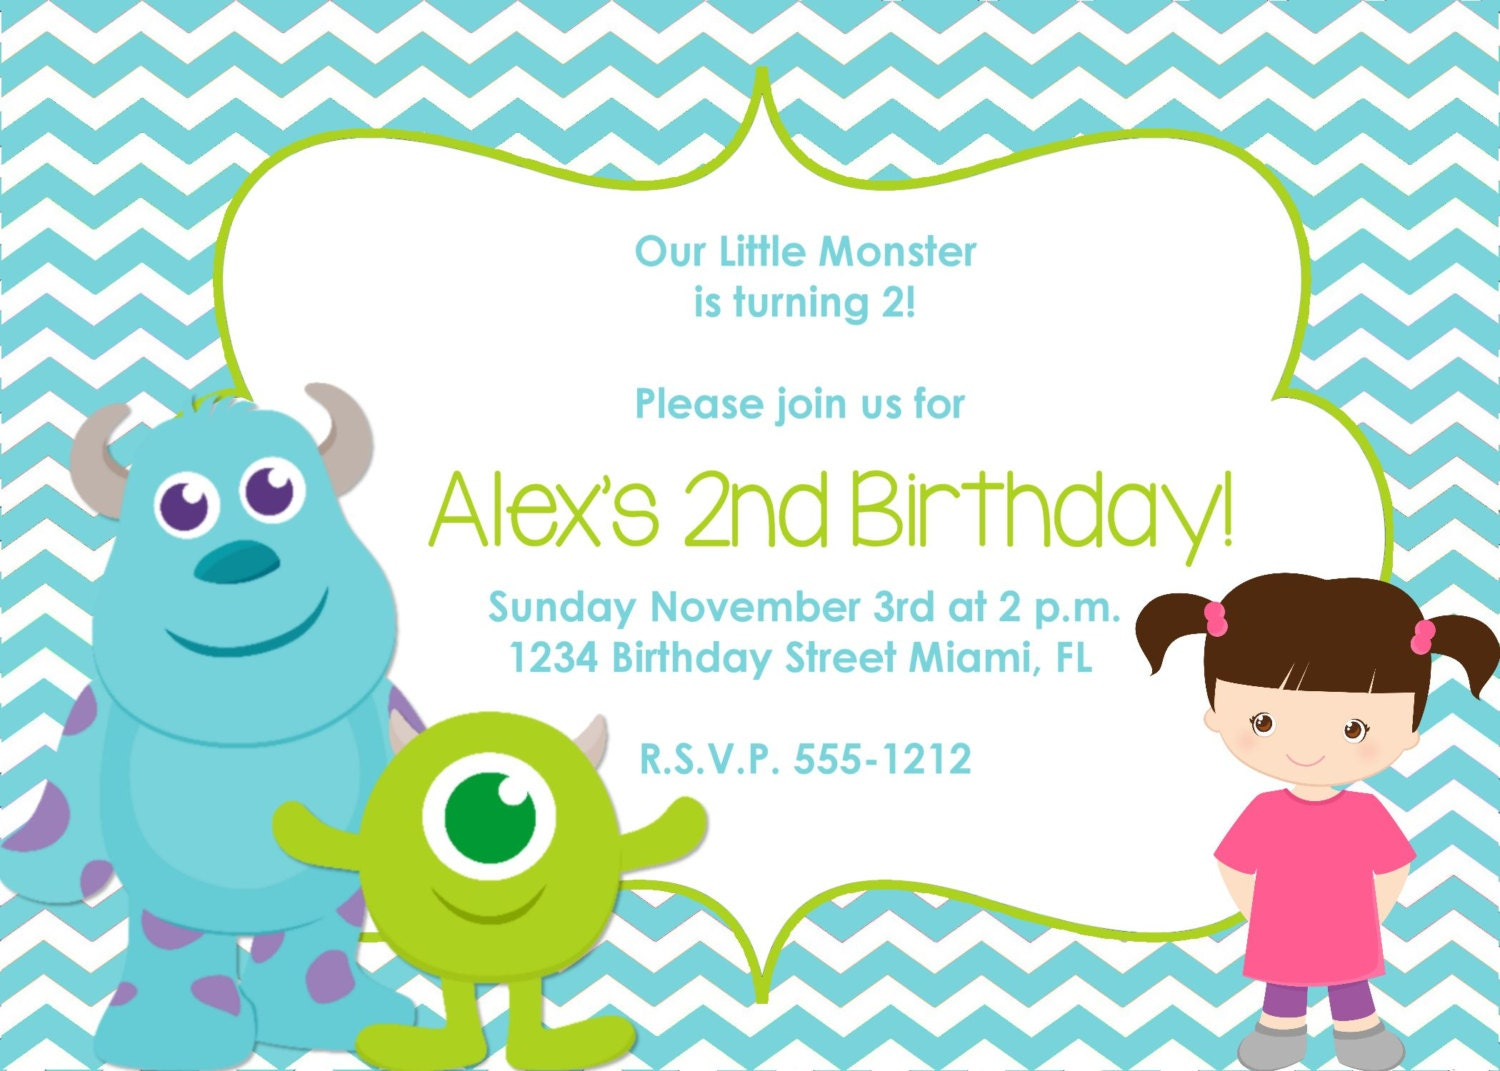 Monsters Inc Birthday Invitations was awesome invitations layout